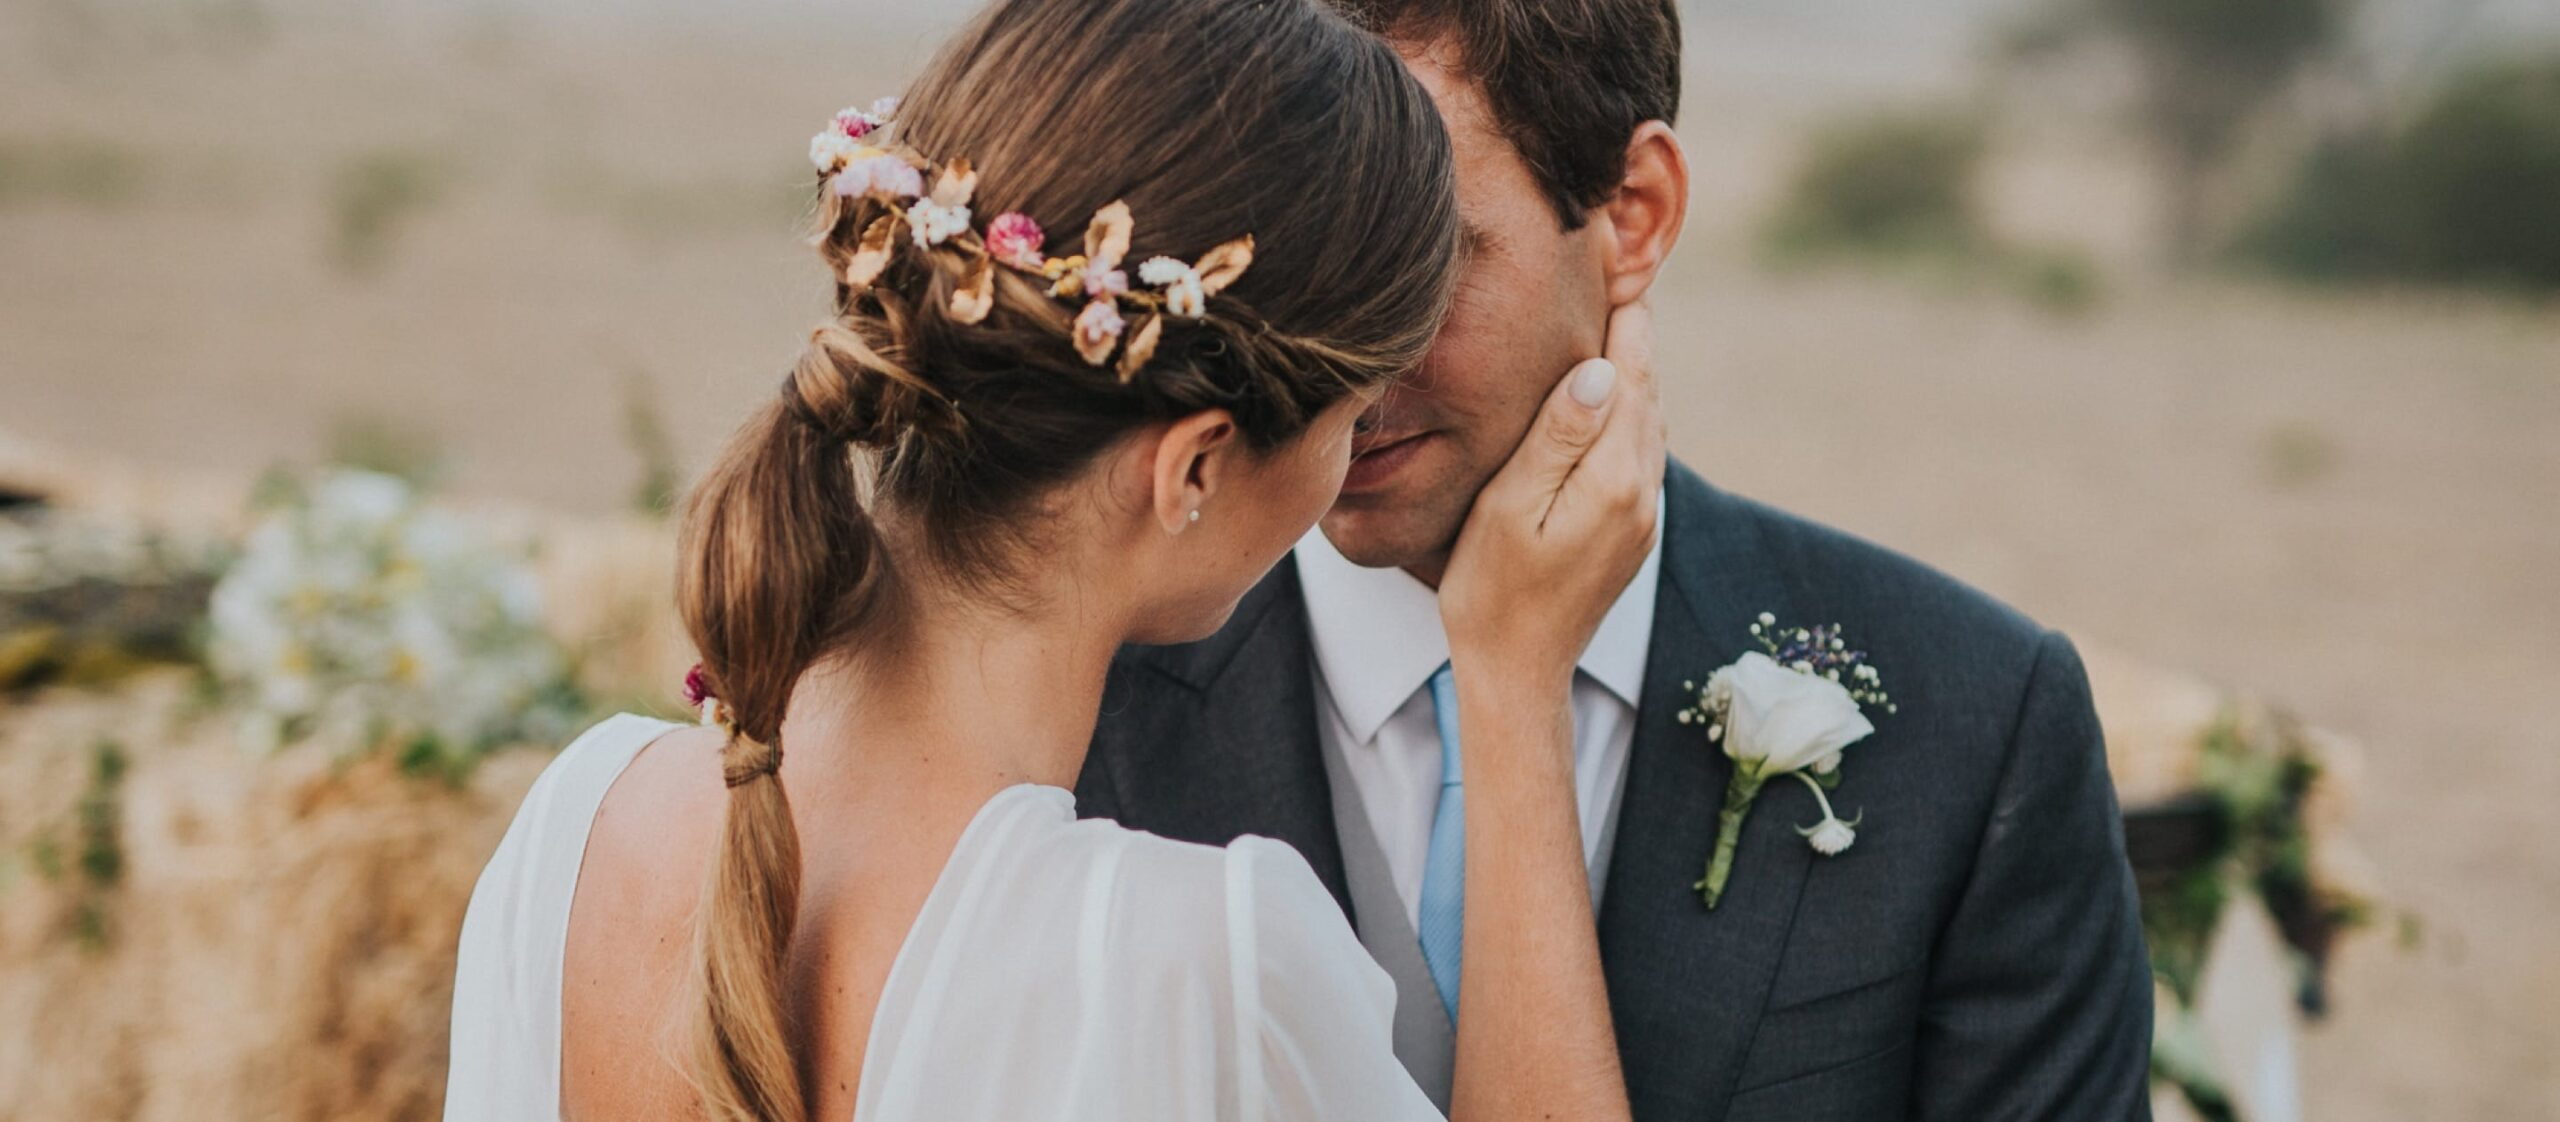 The ultimate guide on getting married in Portugal